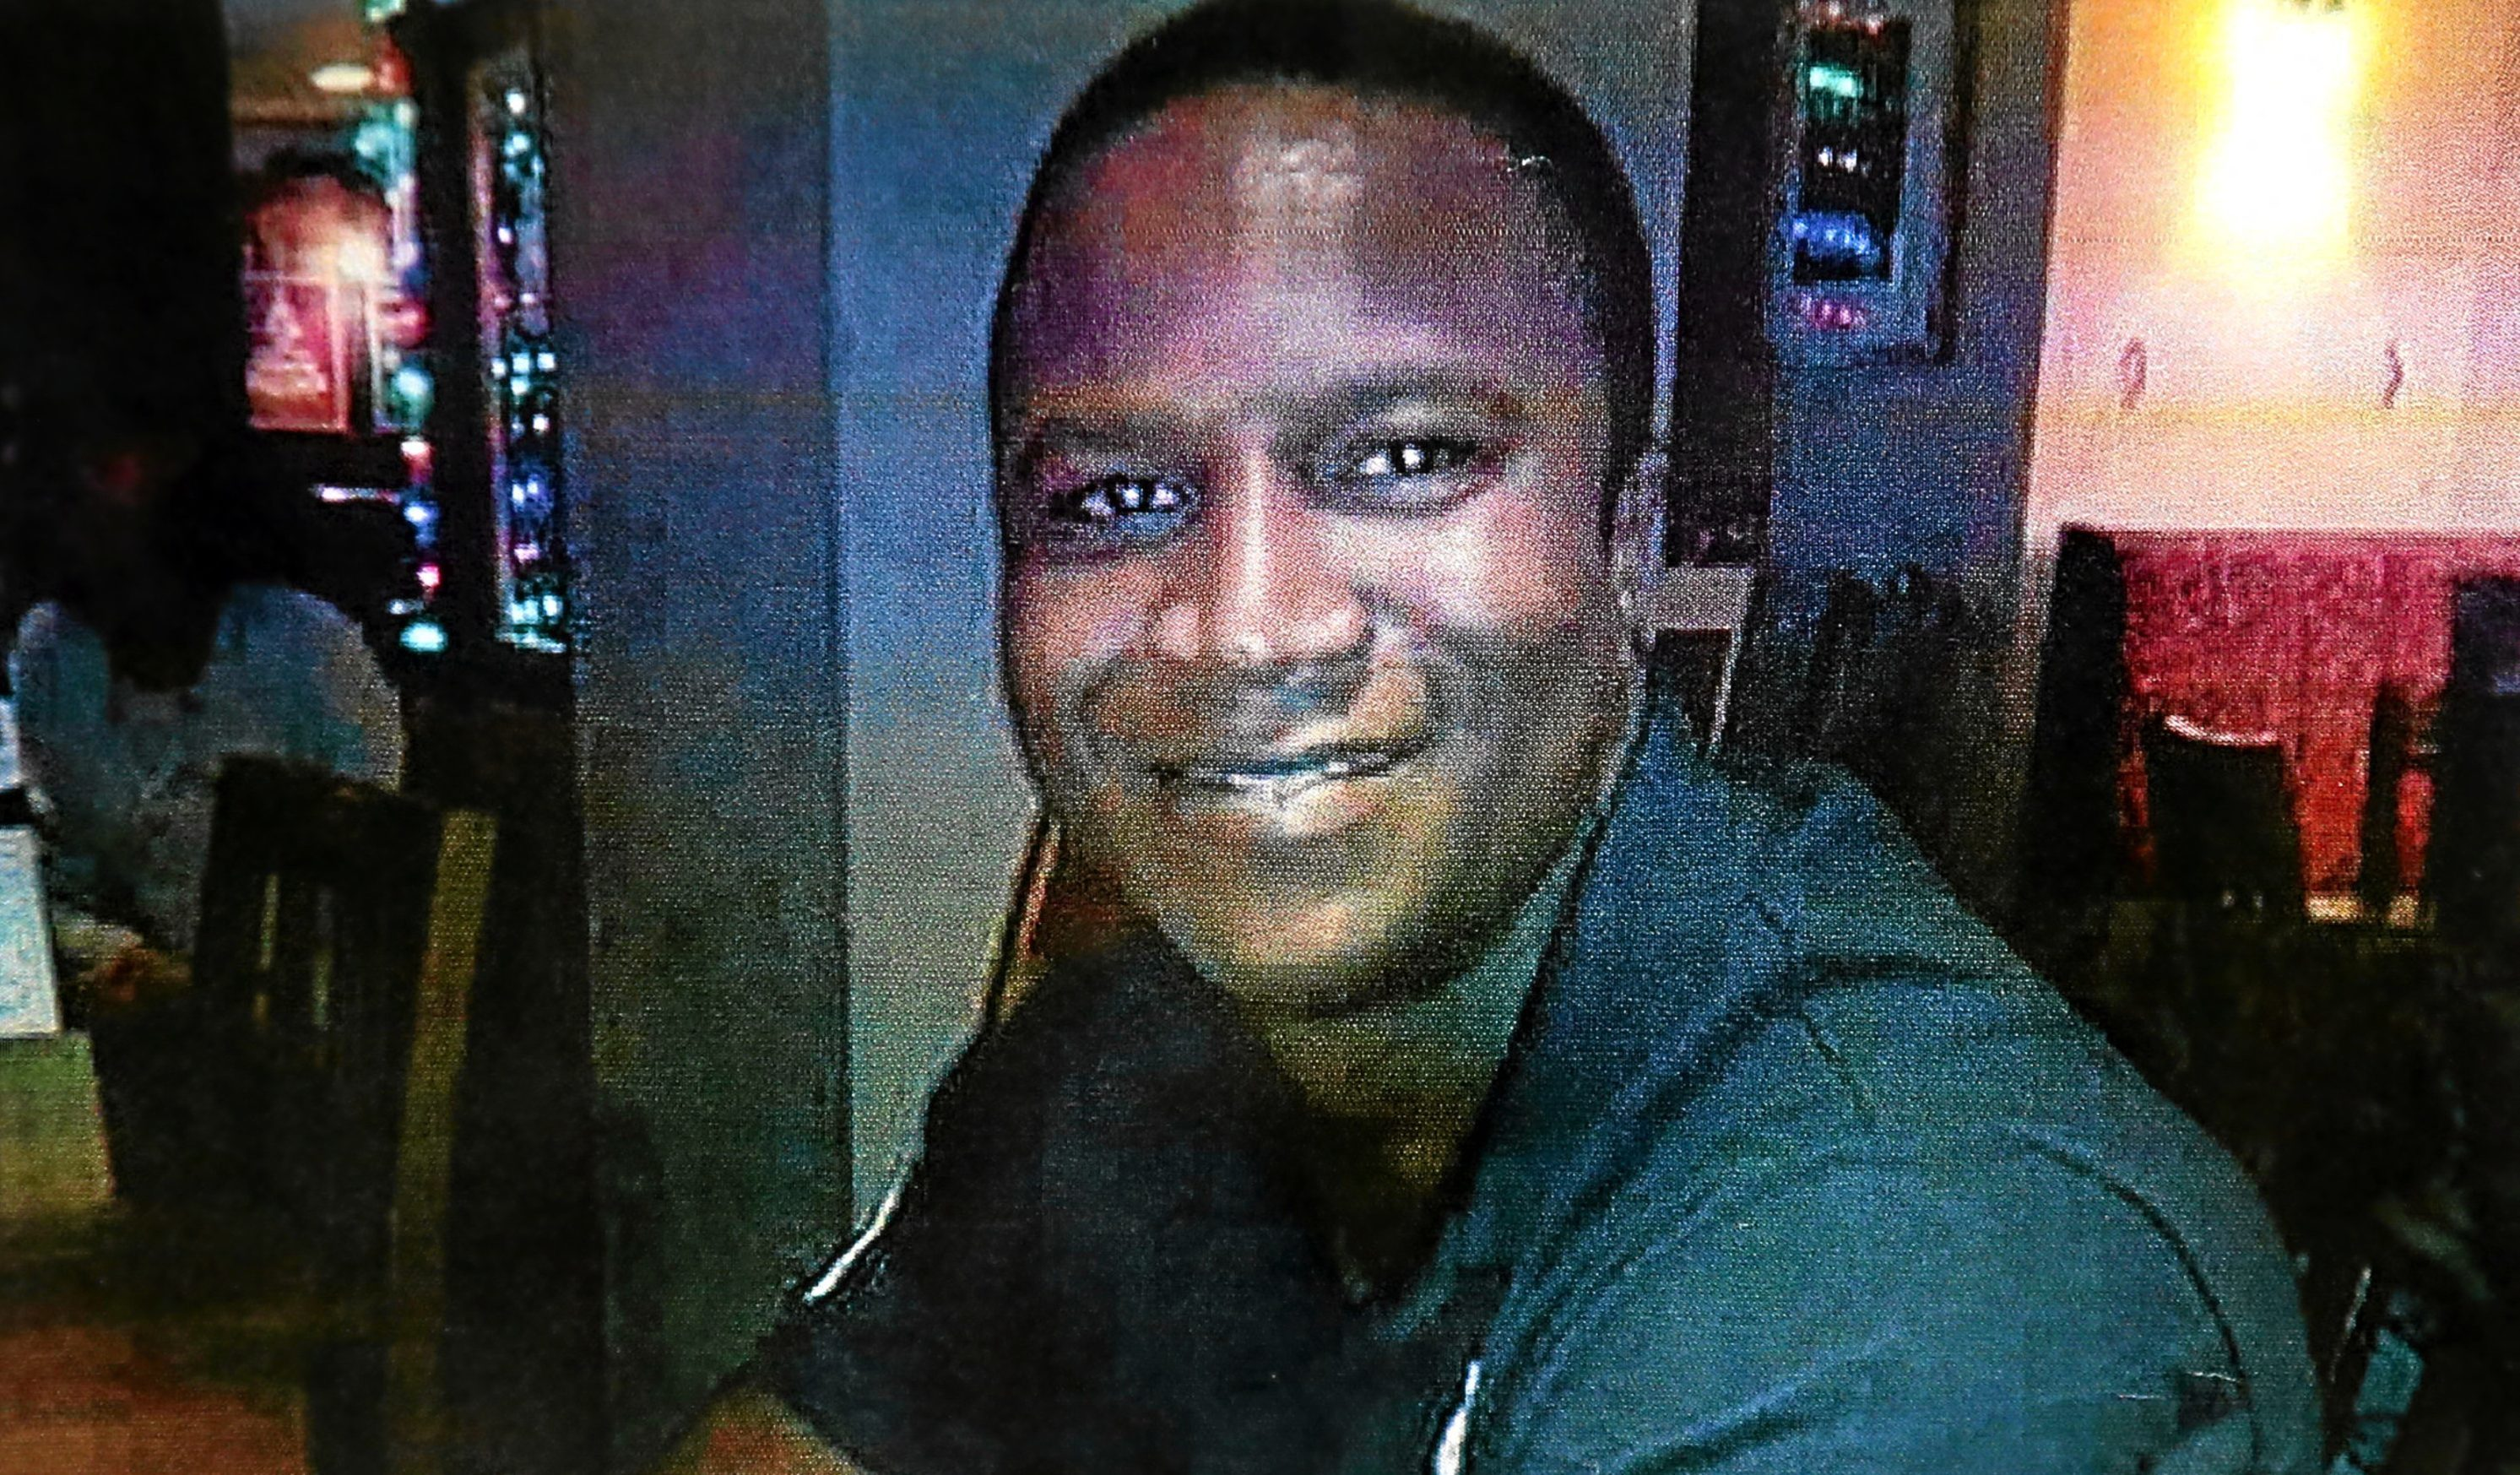 PC Short was one of the officers involved in detaining Sheku Bayoh.